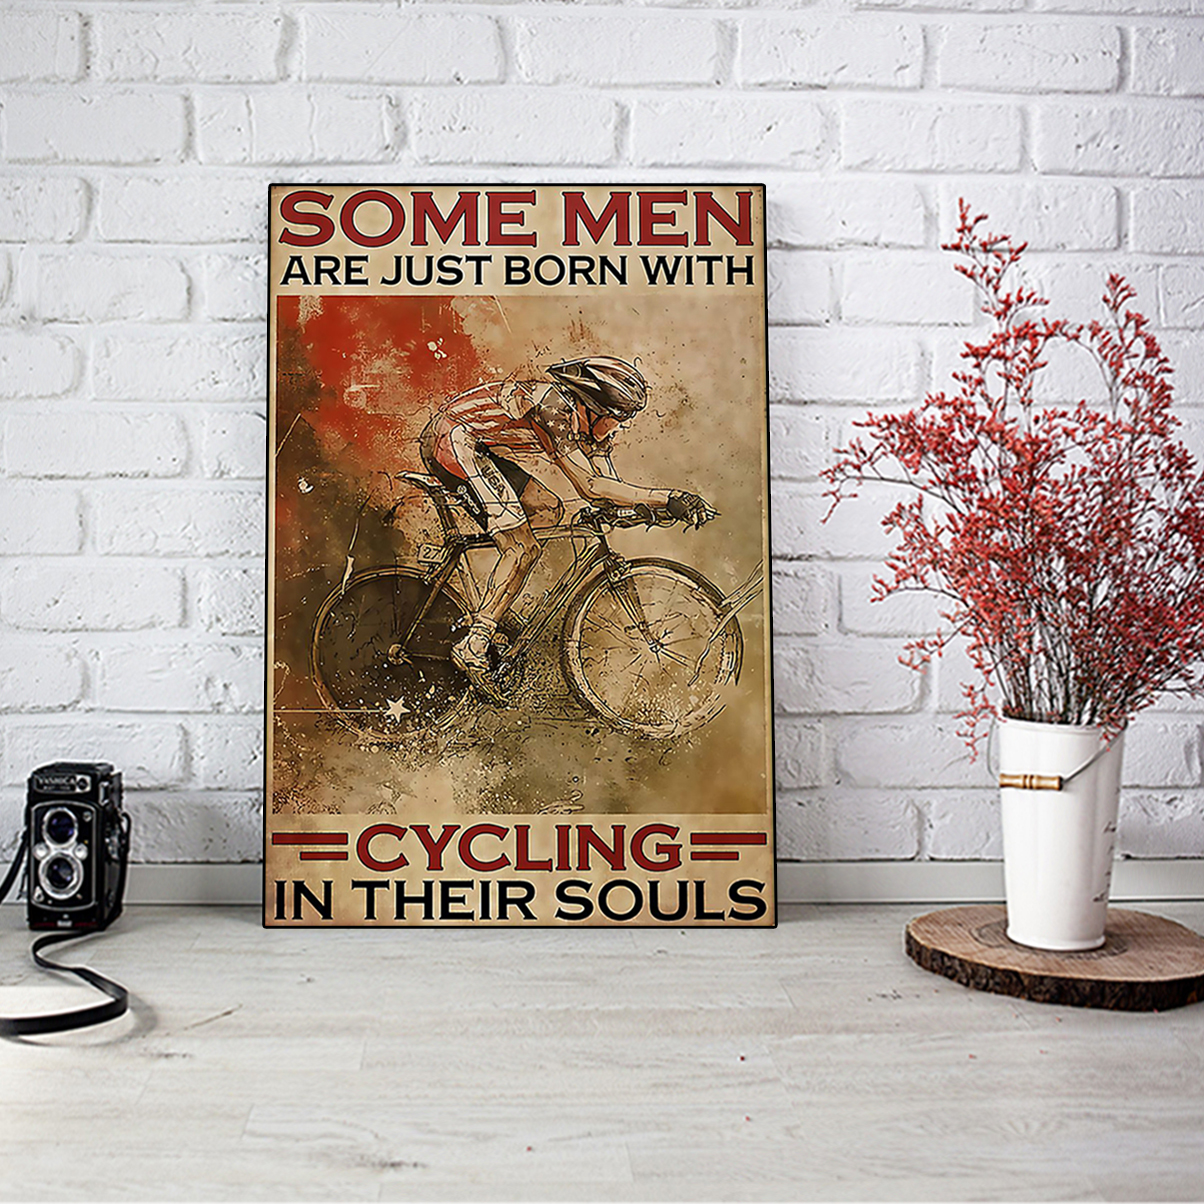 Some men are just born with cycling in their souls poster A3